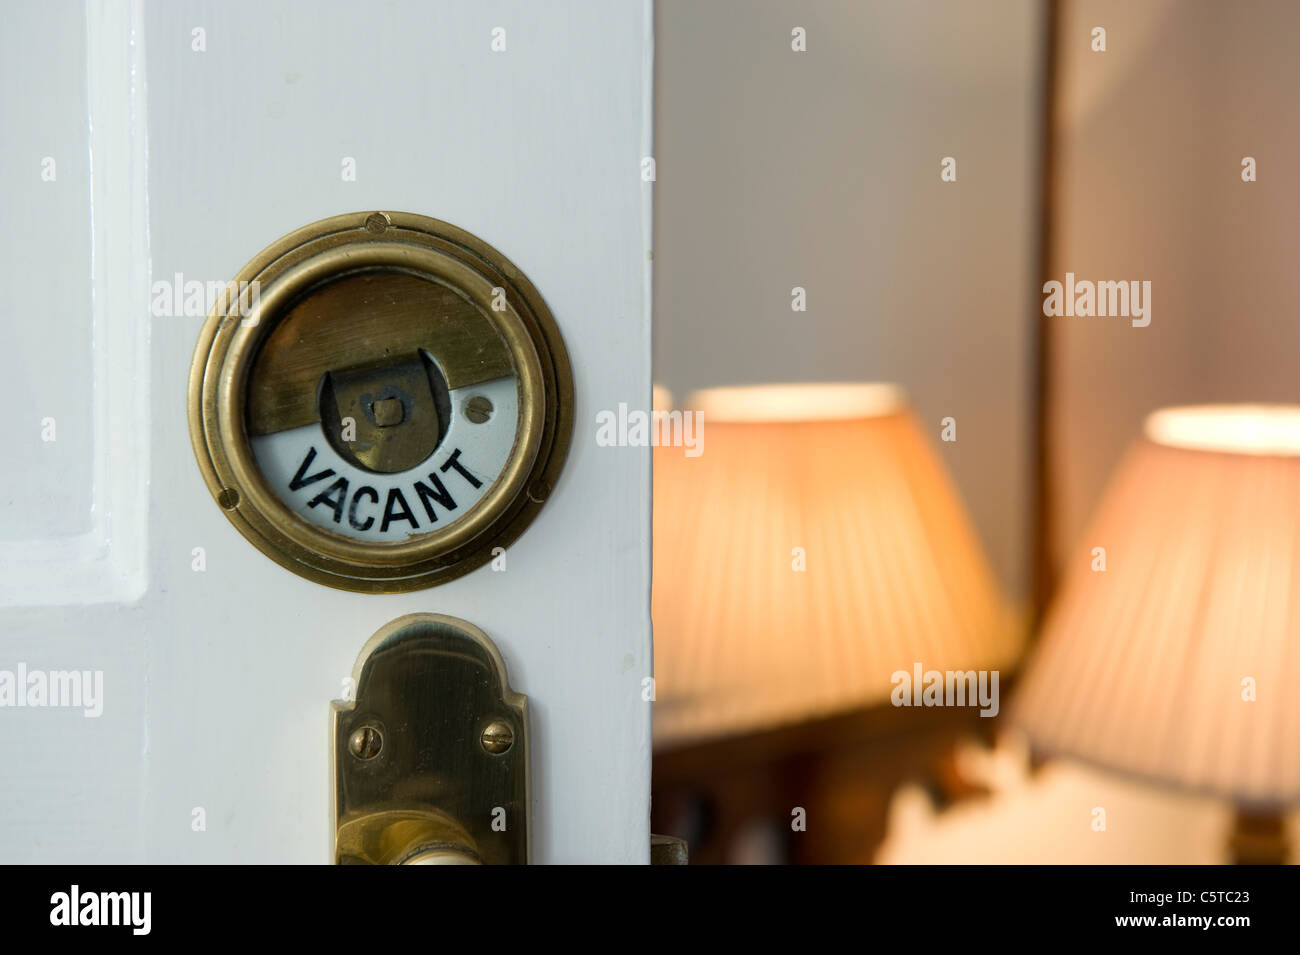 Mobile Security Lock